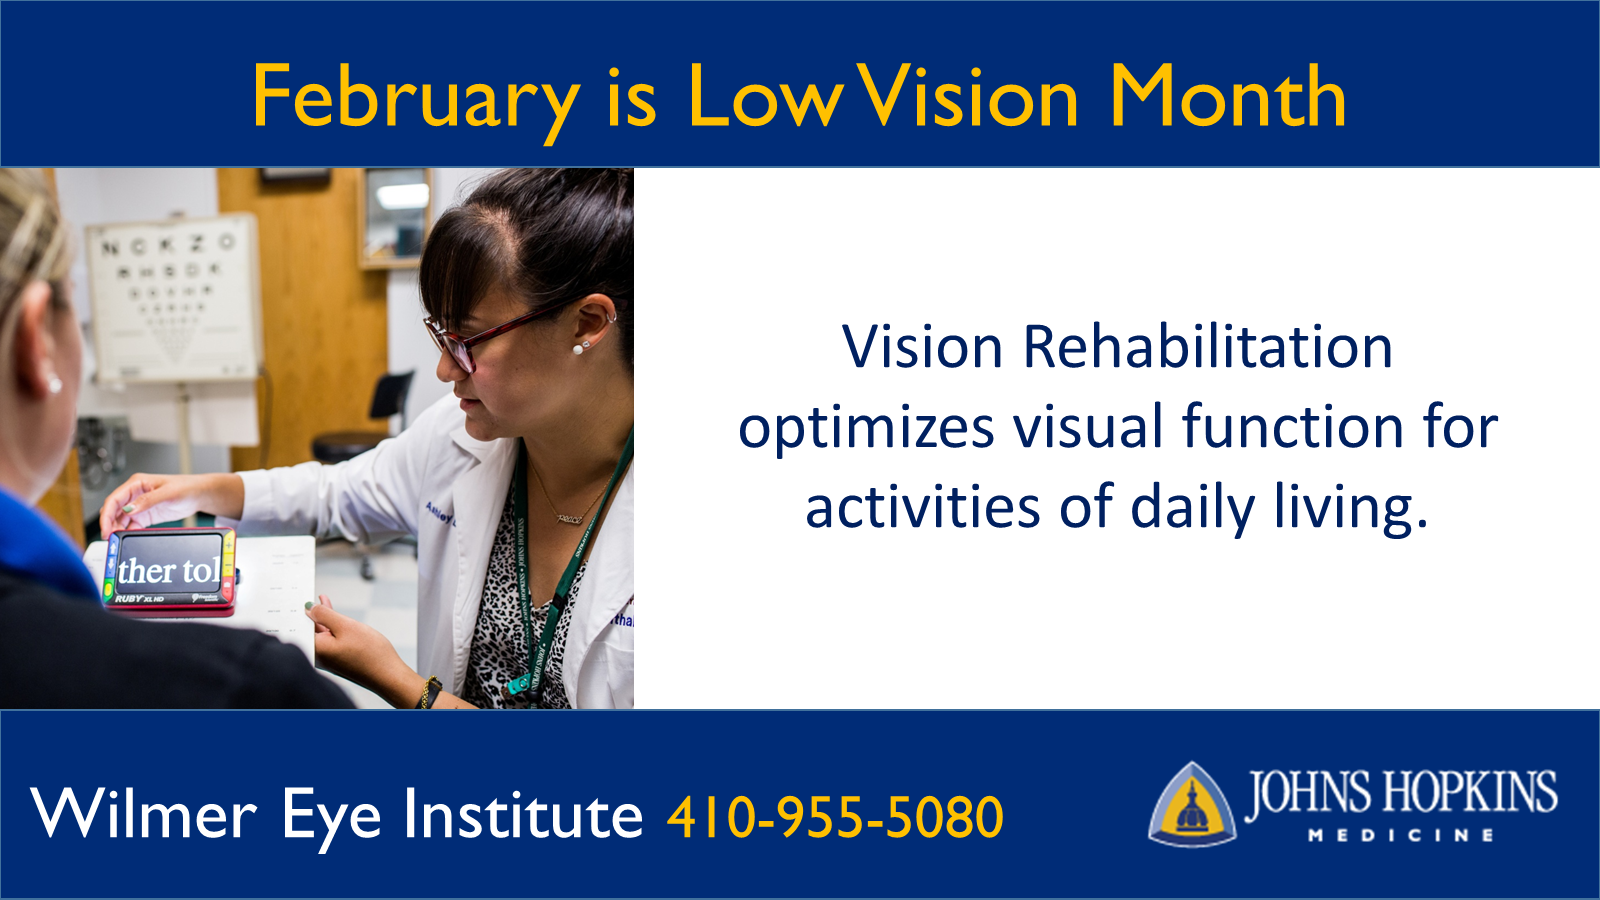 February is Low Vision month